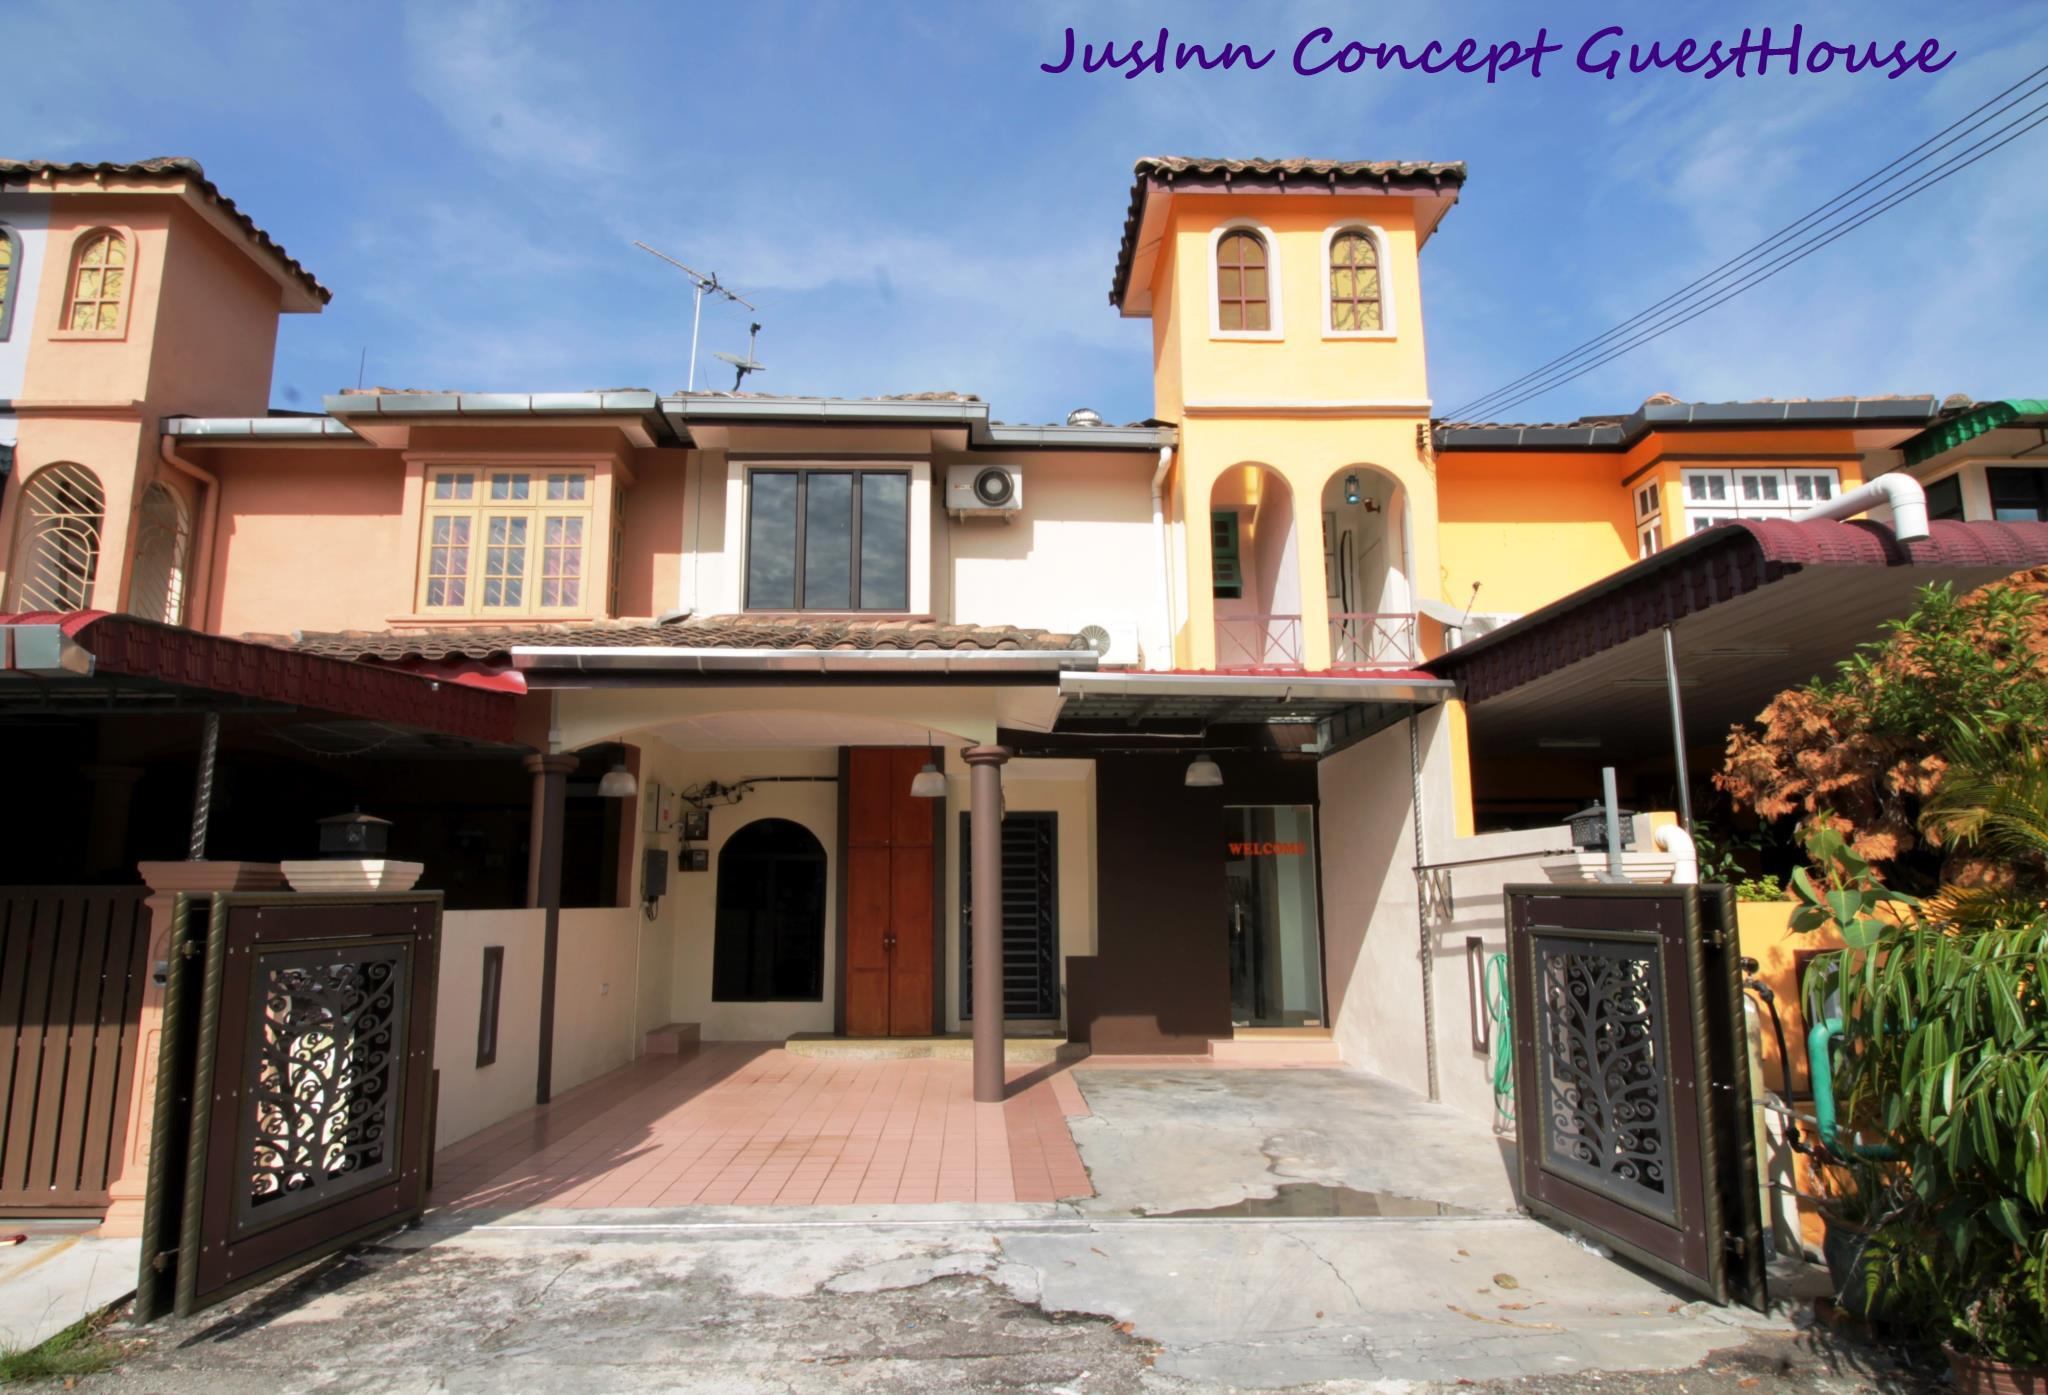 JusInn Vacation GuestHouse